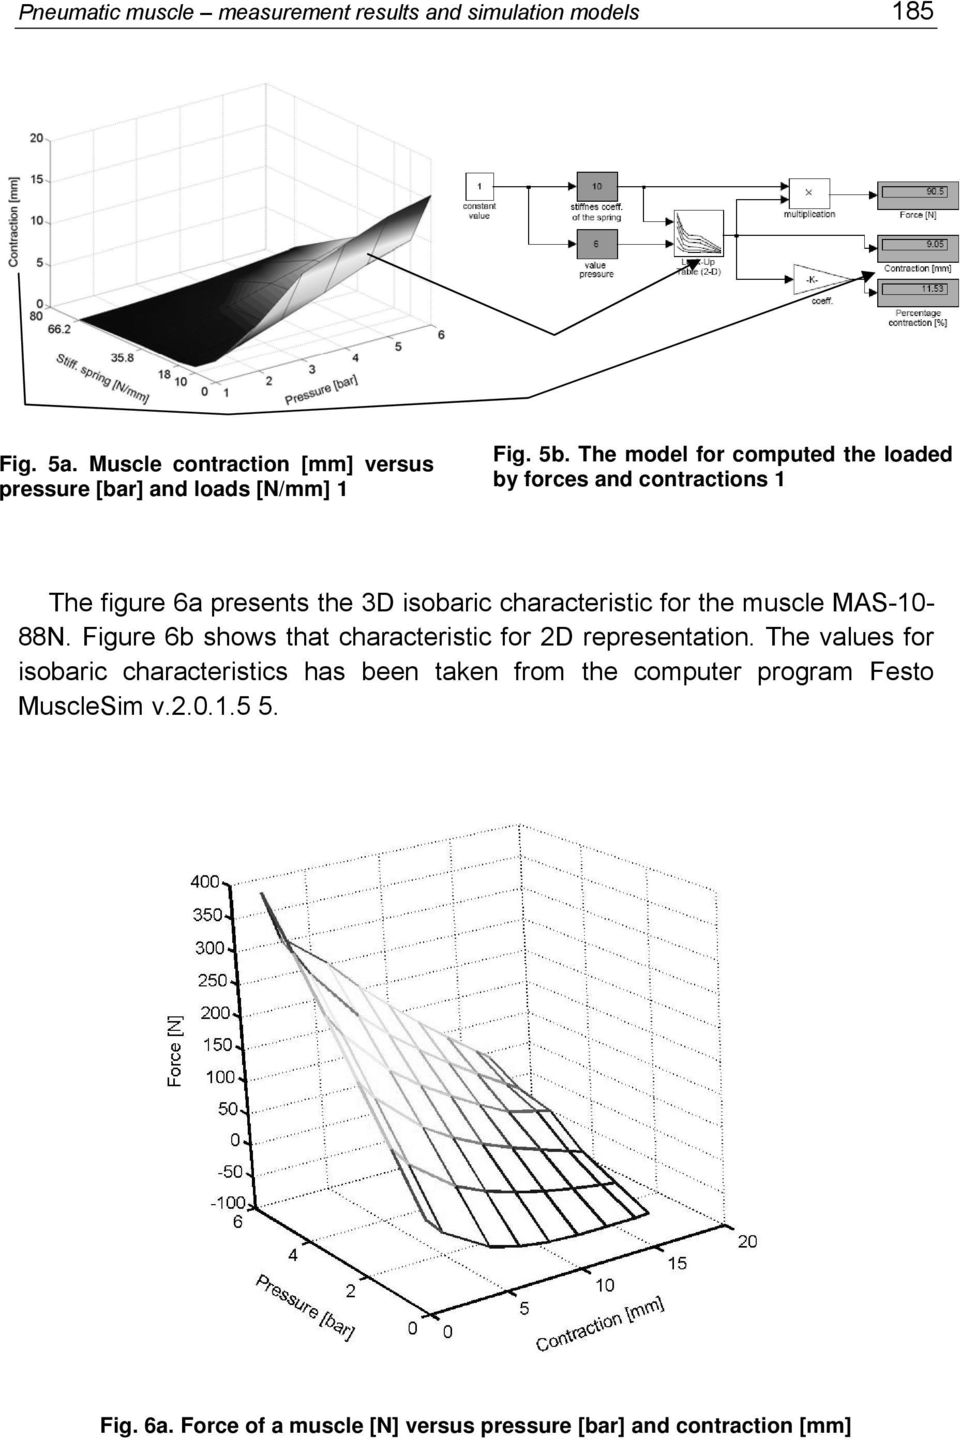 The model for computed the loaded by forces and contractions 1 The figure 6a presents the 3D isobaric characteristic for the muscle